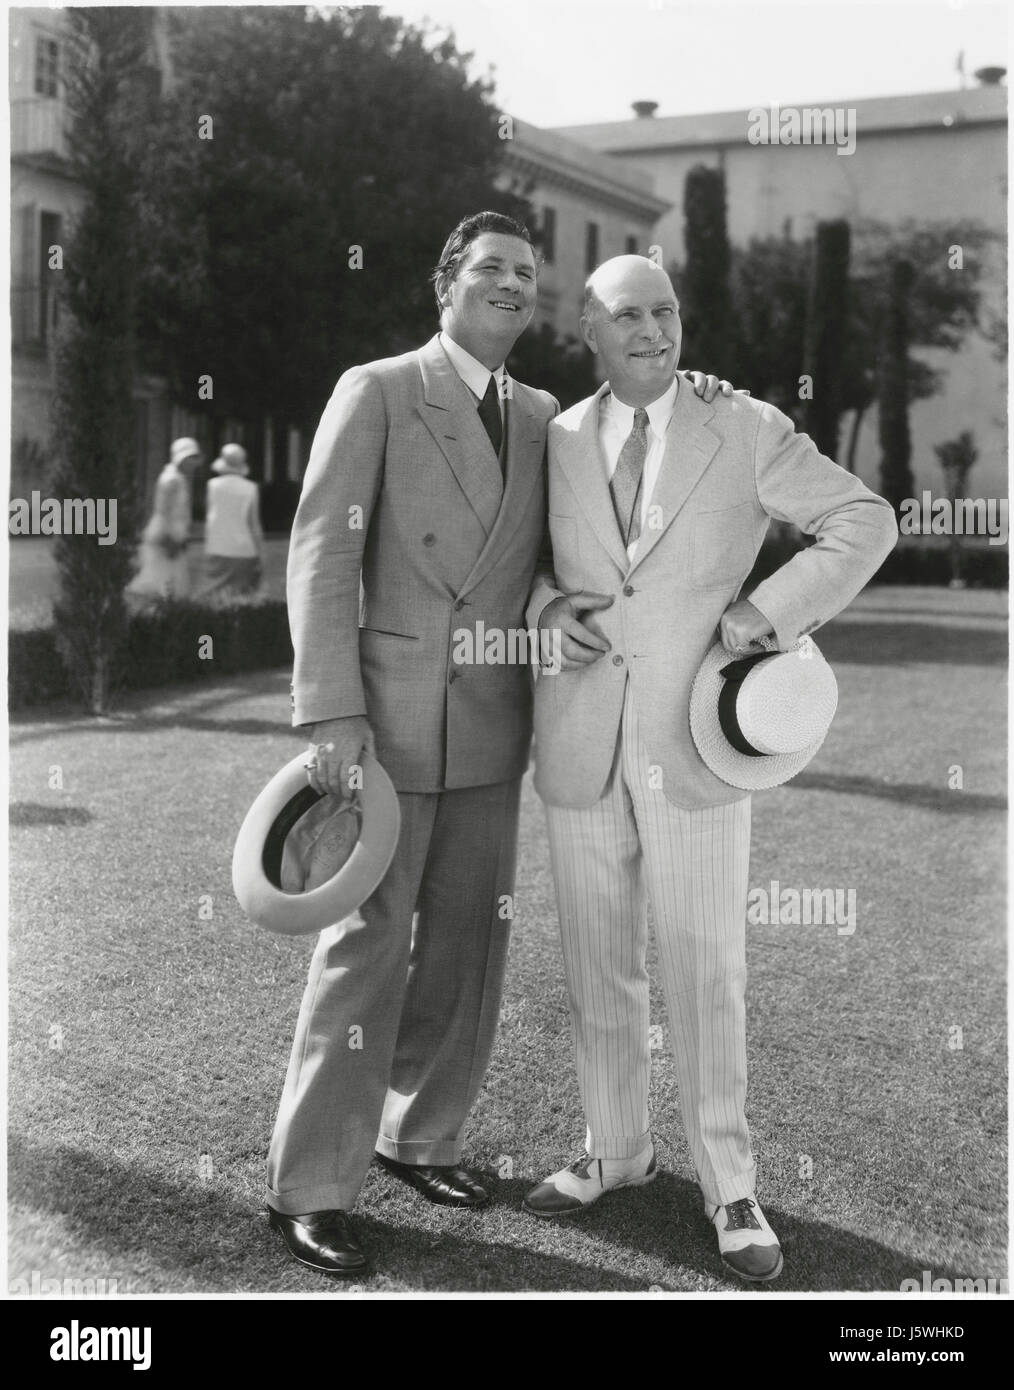 Actor George Bancroft, Portrait with Unidentified Man, 1930's - Stock Image